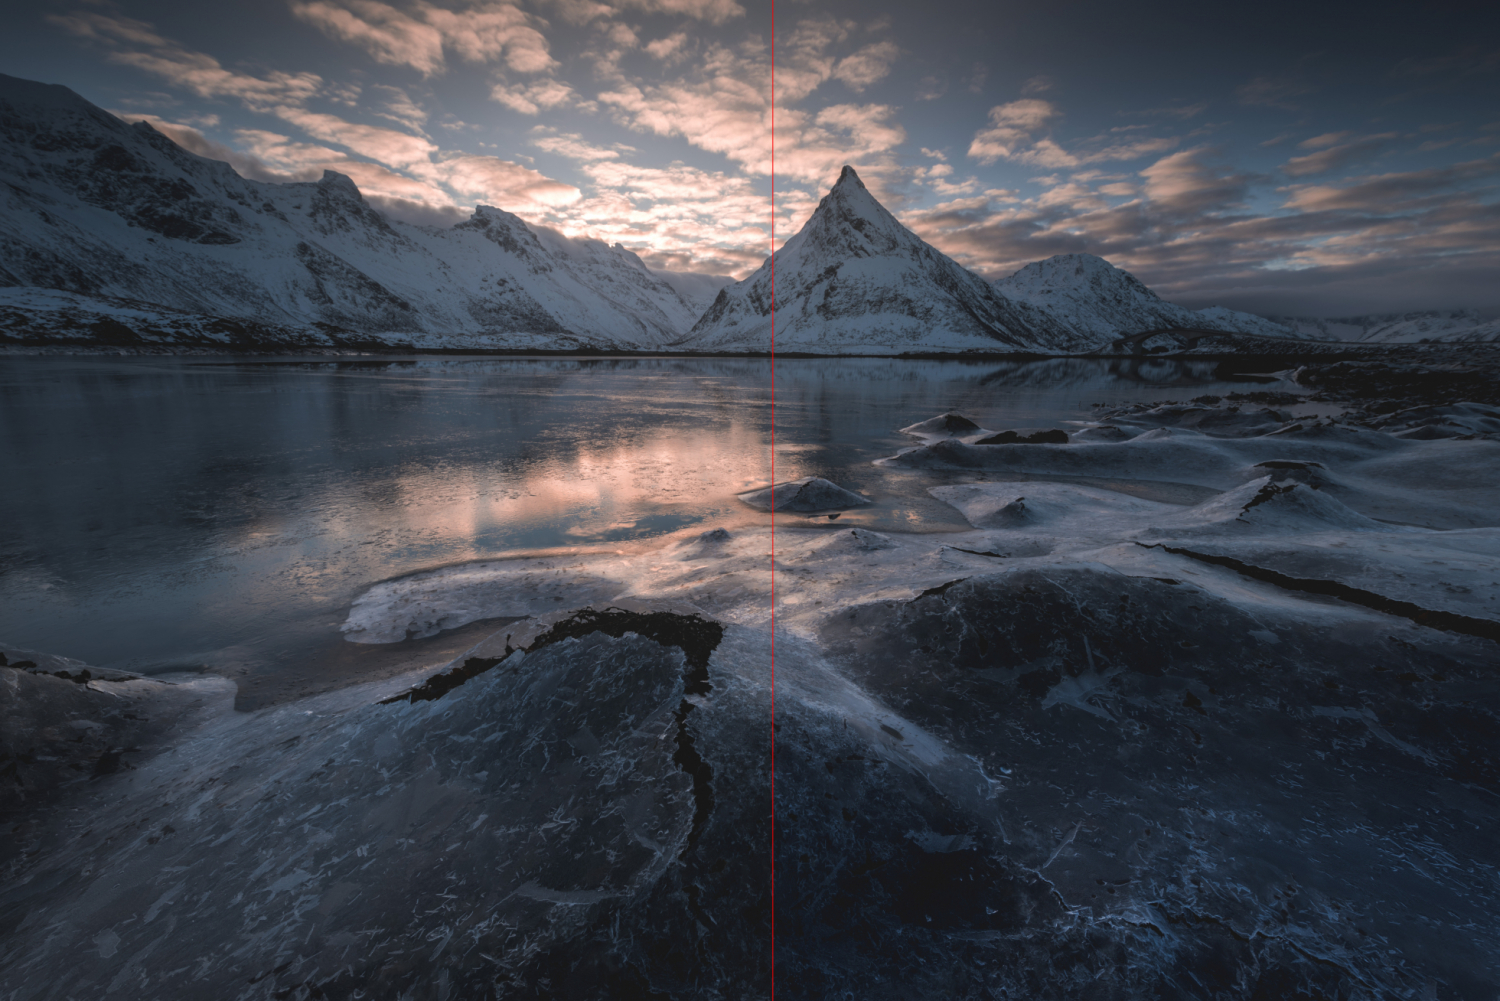 3 - How to Use the Lightroom Graduated Filter